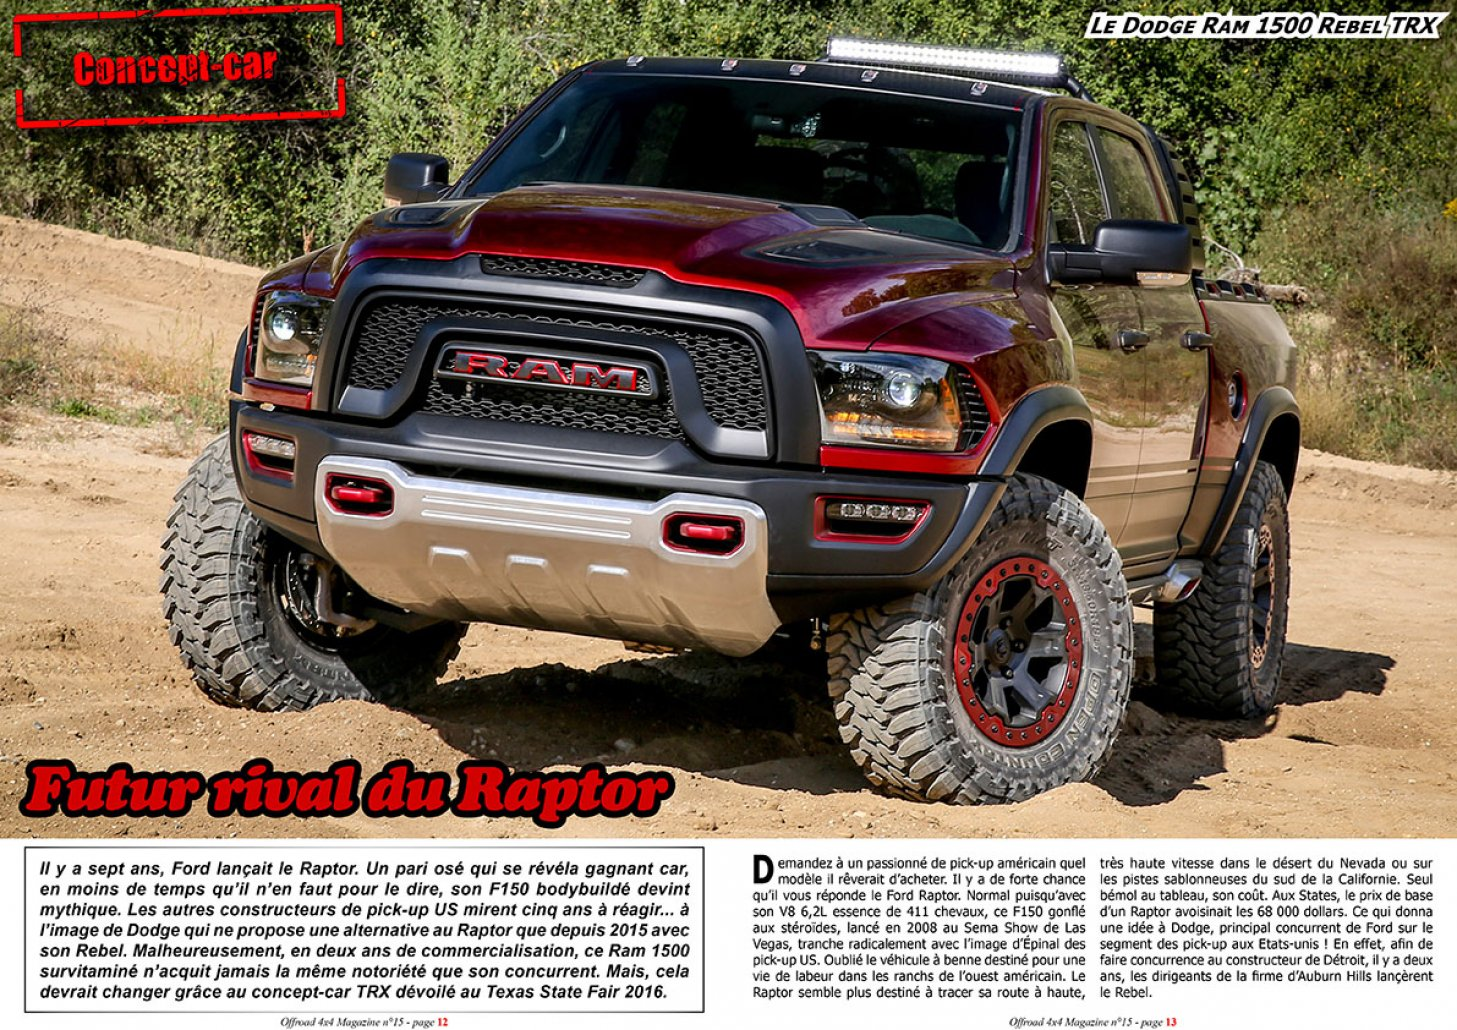 Le Dodge Ram Rebel TRX